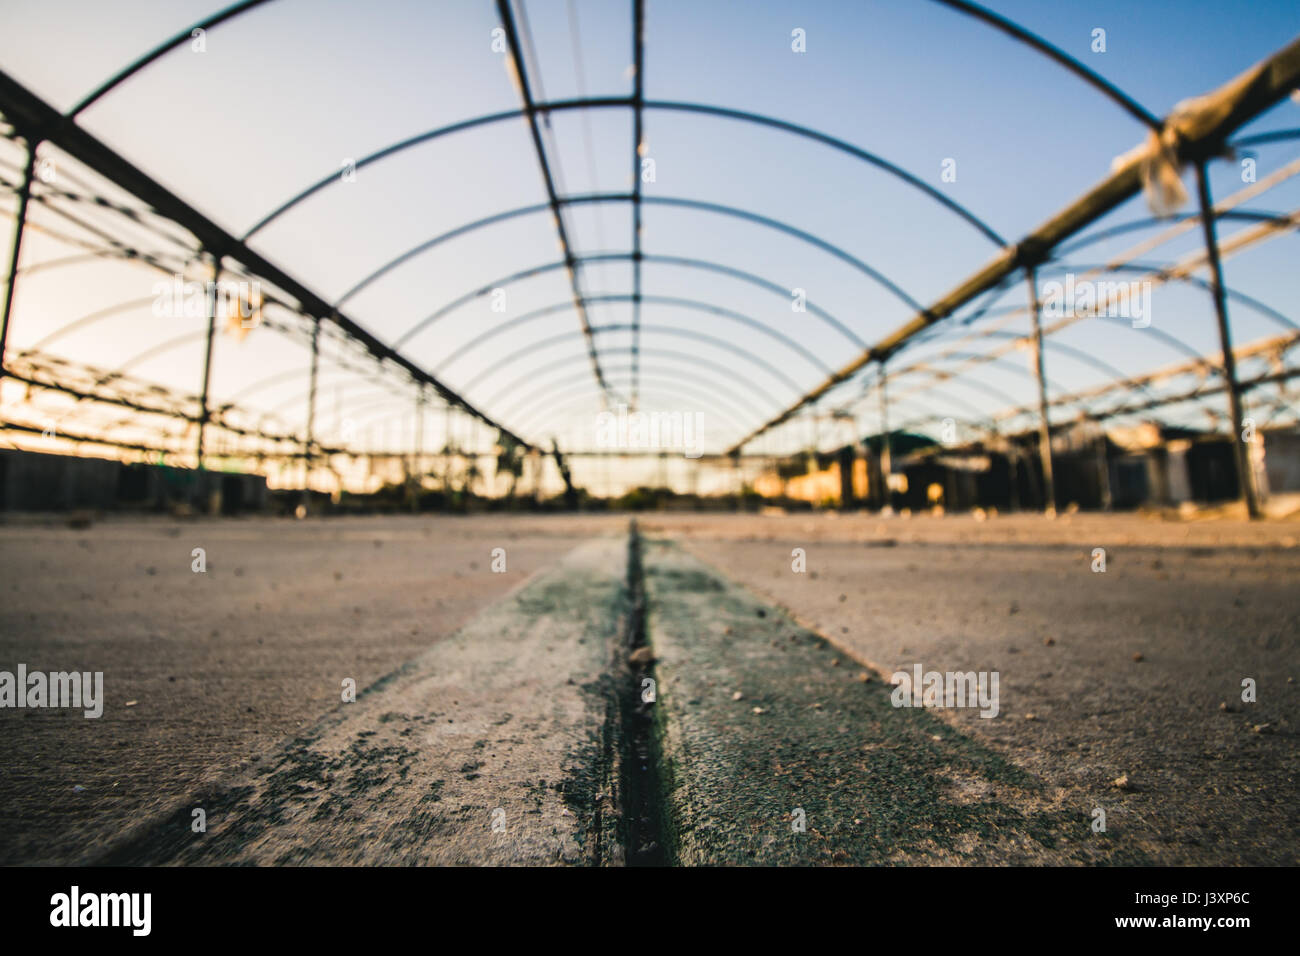 Old blurred abandoned greenhouse with focus on a small stone in the foreground at sunset with warm light. Landscape - Stock Image